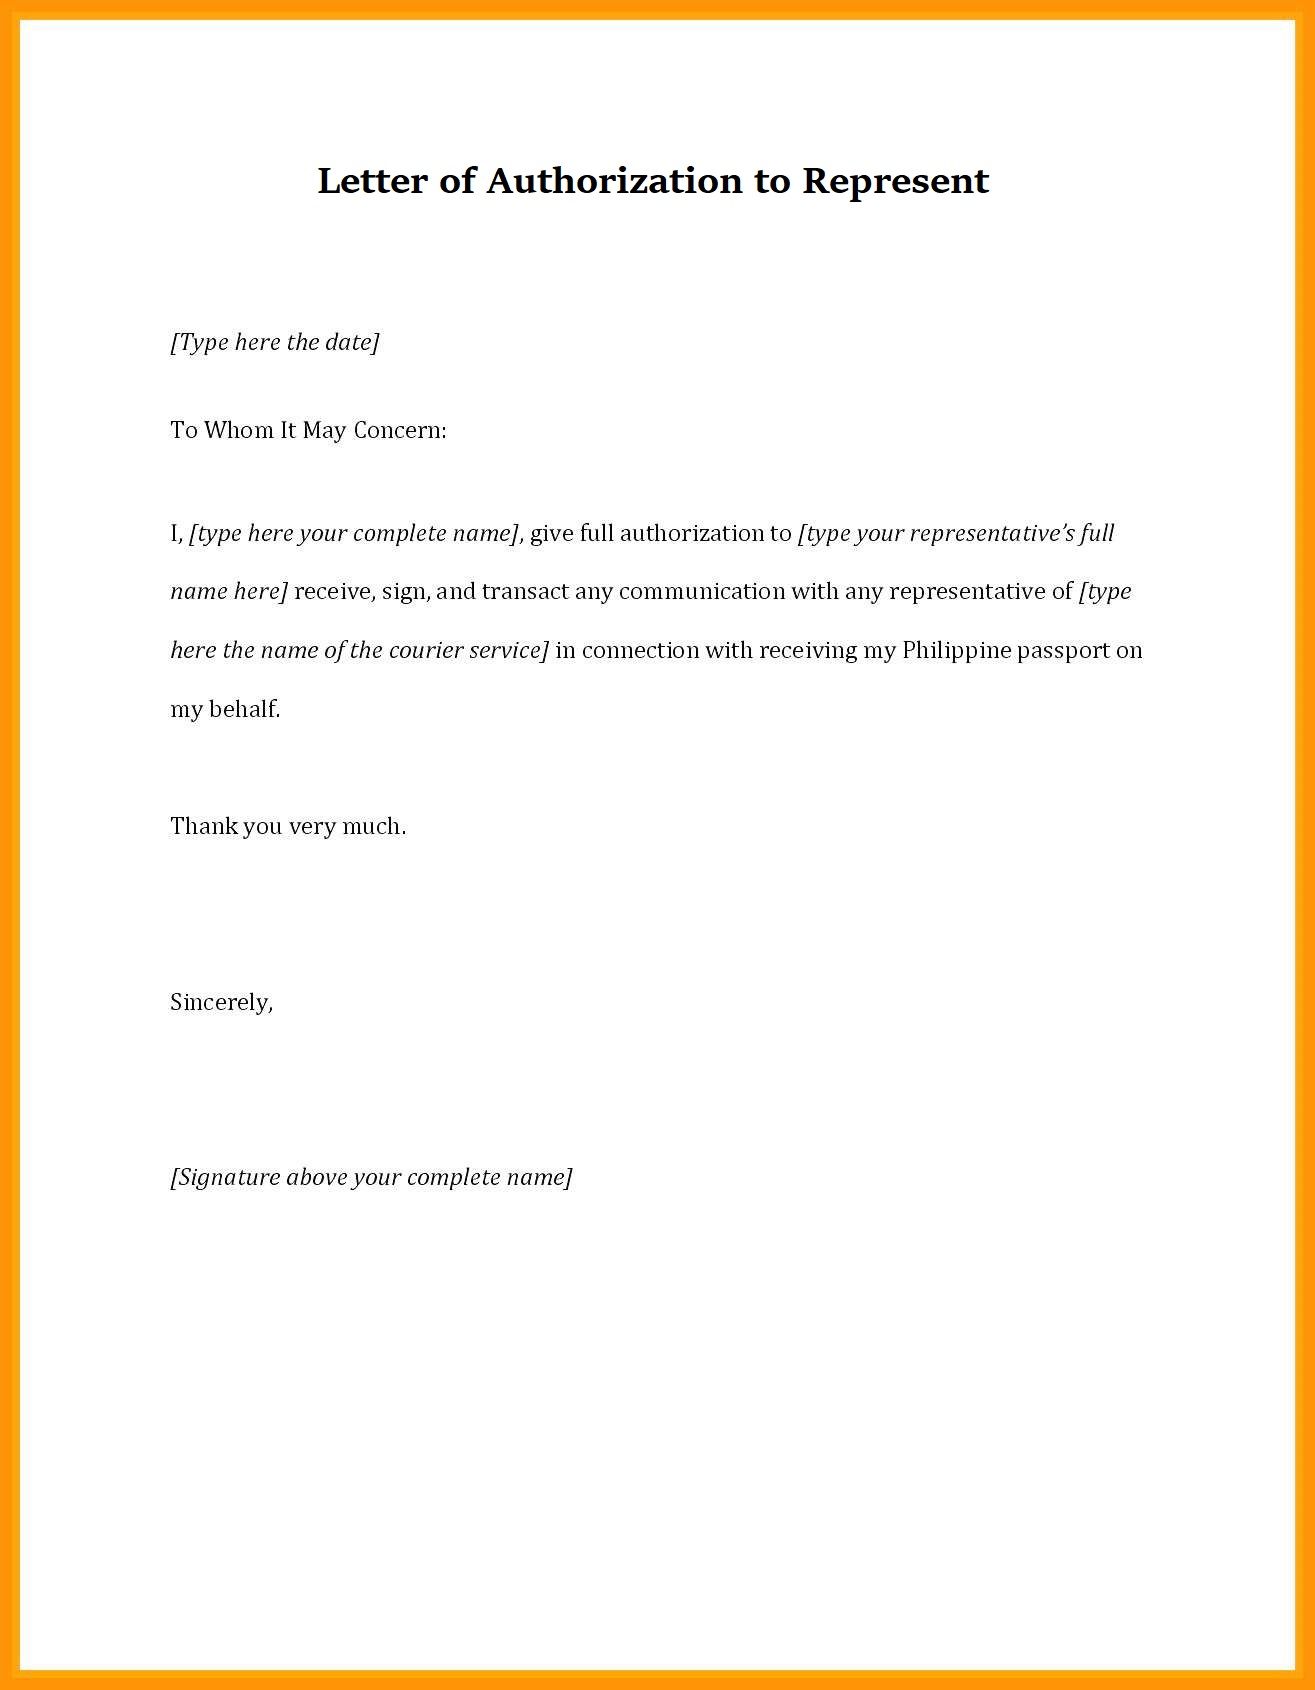 Letter of Authorization to Represent a Company